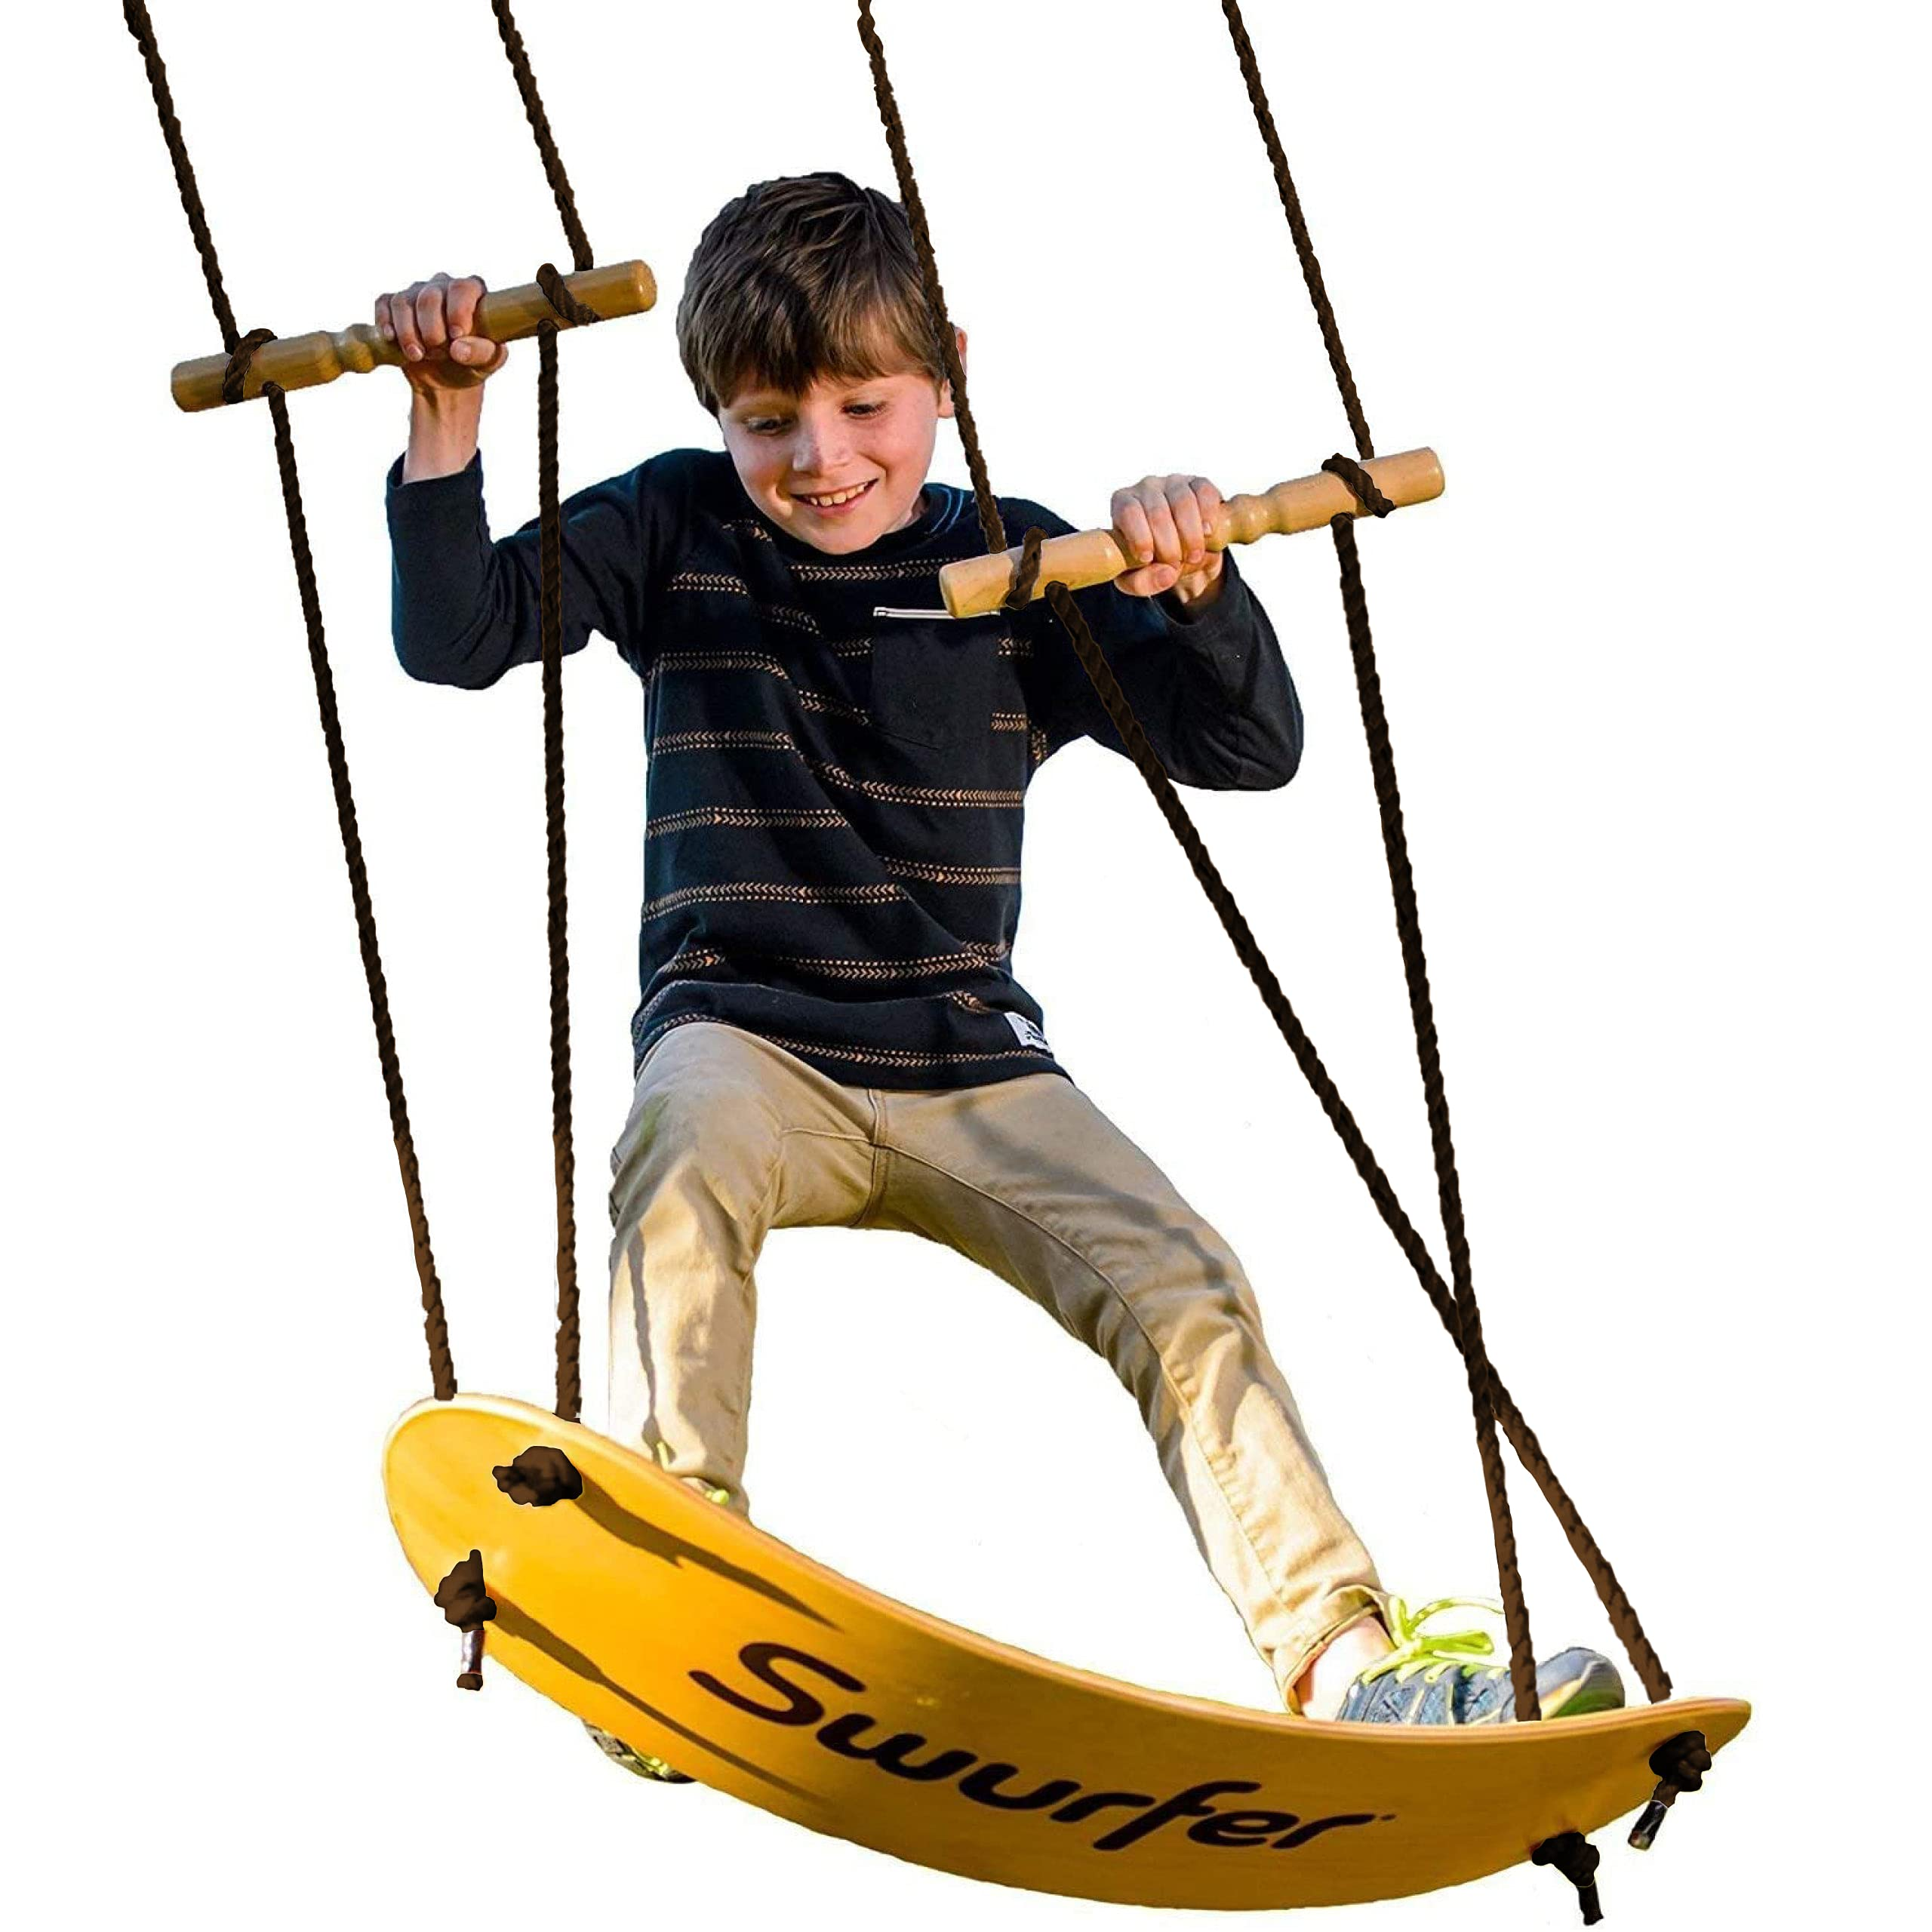 Swurfer - the Original Stand Up Surfing Swing - Curved Maple Wood Board To Easily Surf The Air